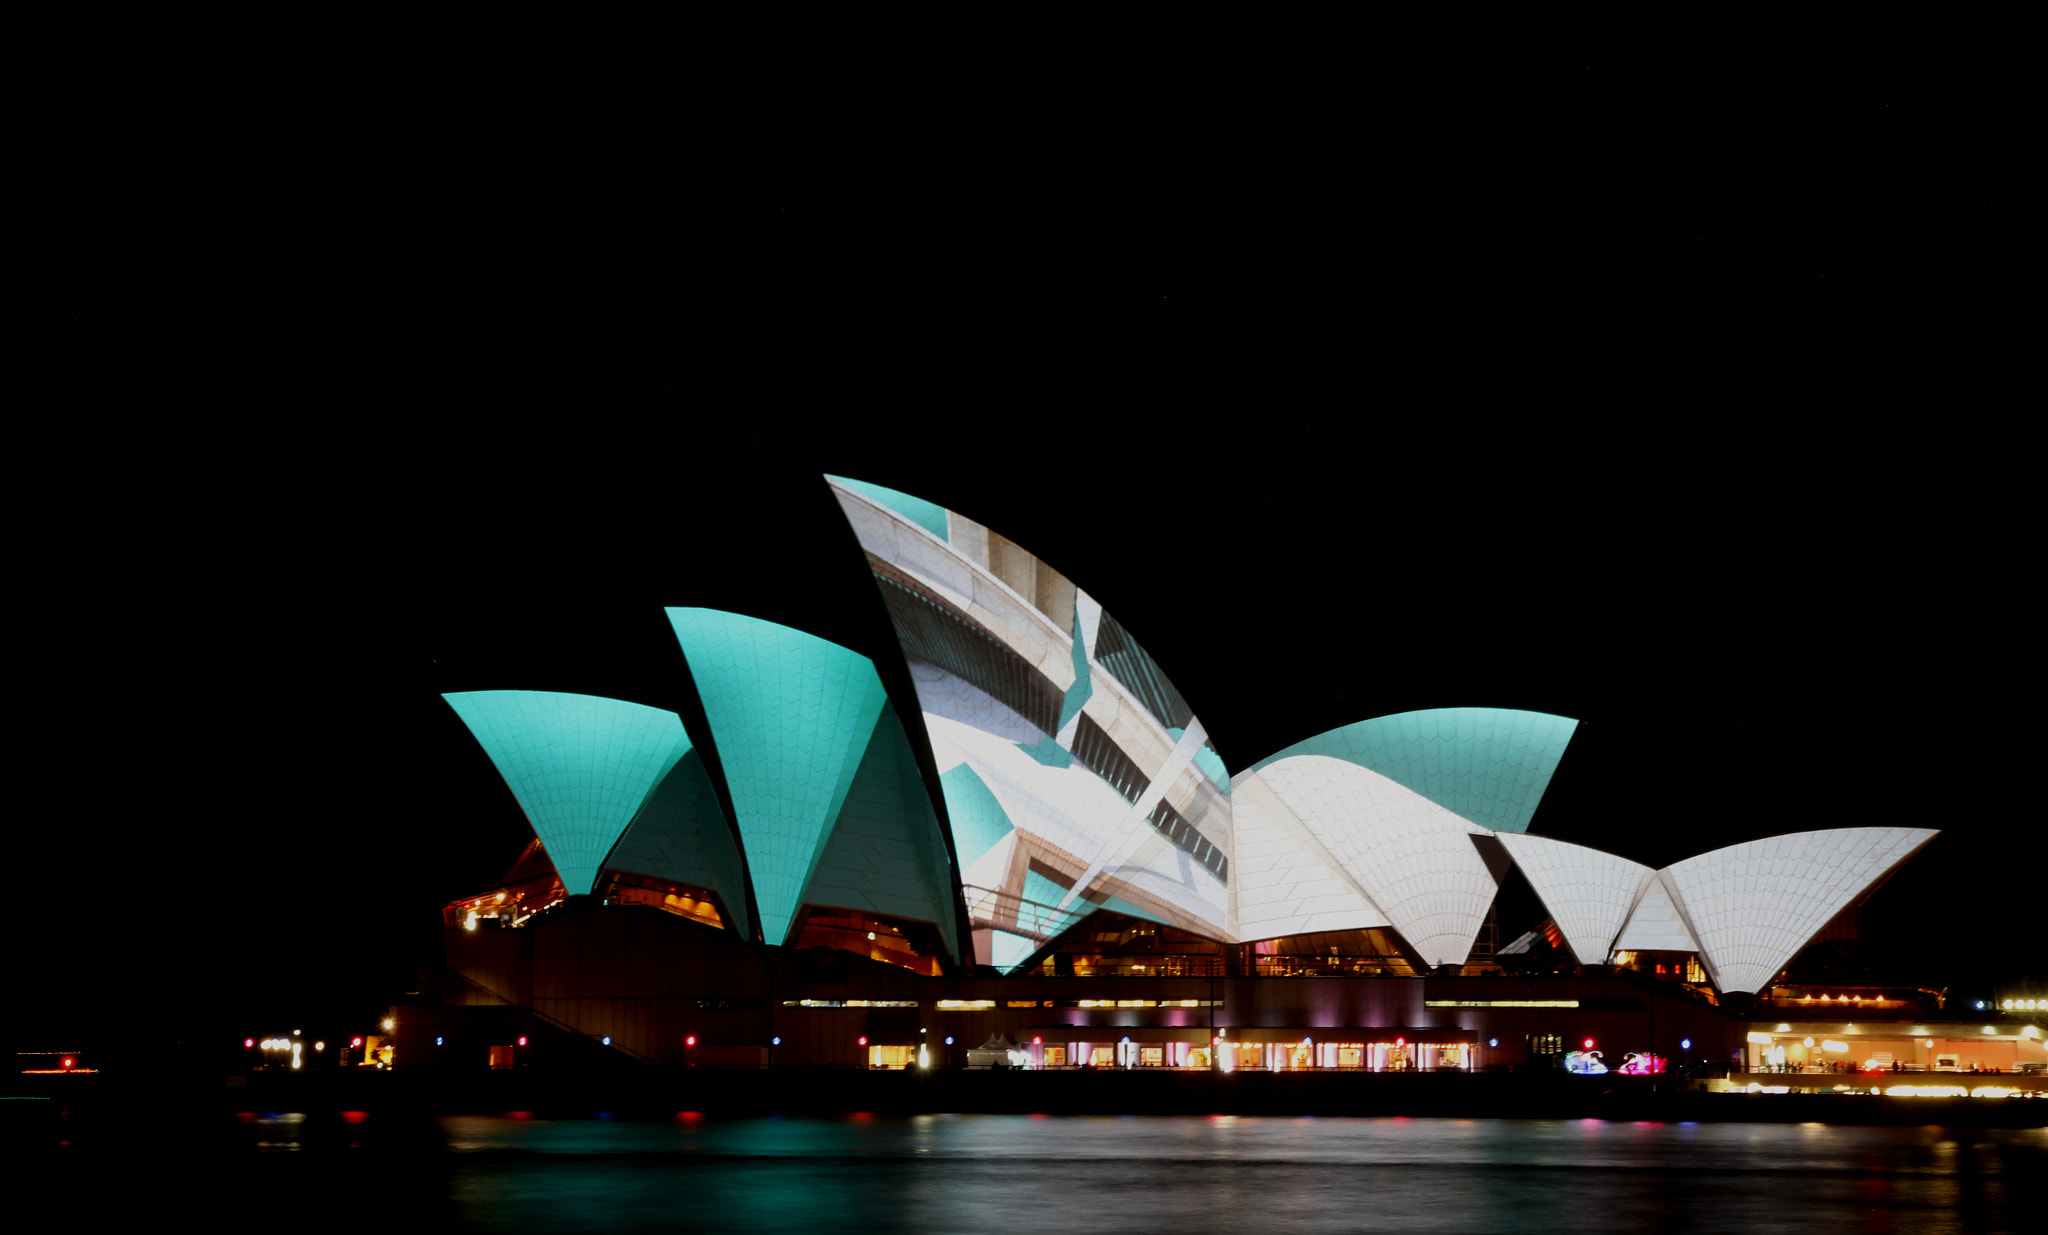 Photograph Vivid Opera House by Marius Brecher on 500px